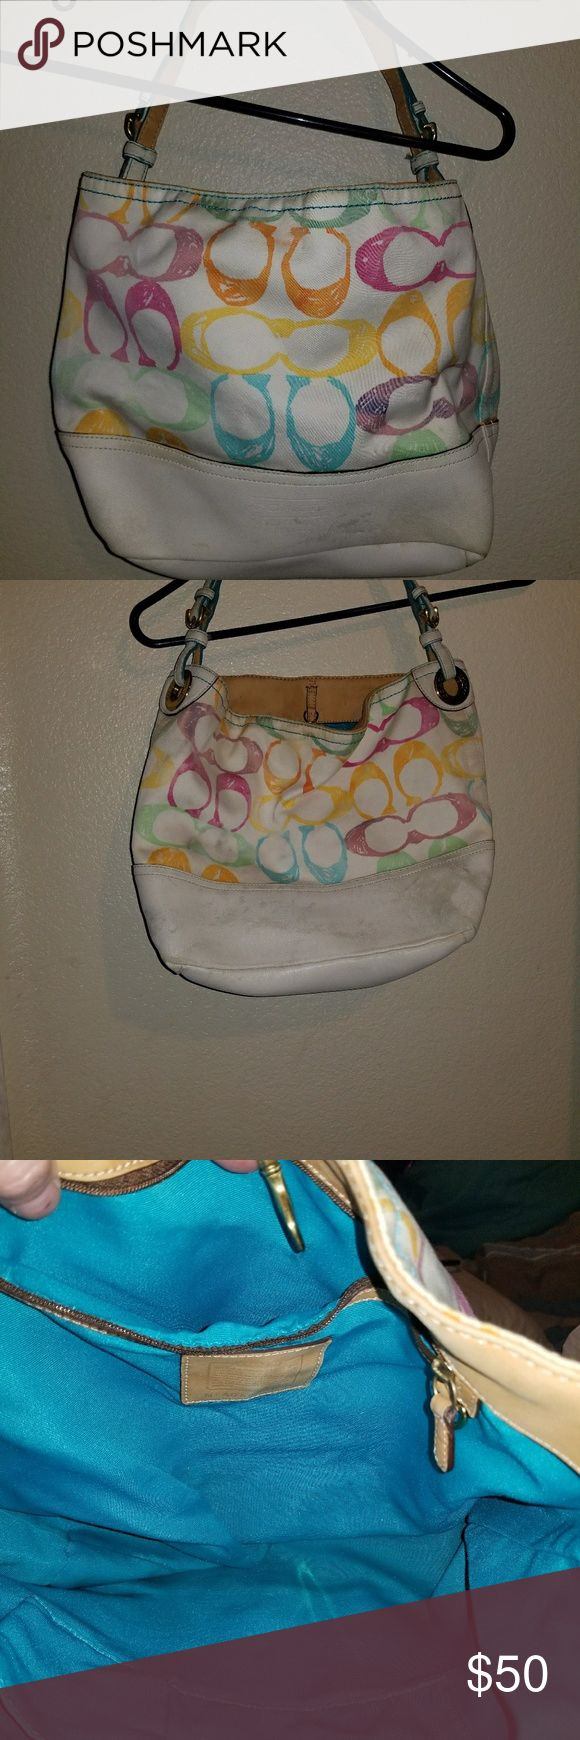 Coach Purse A Coach tote multu color pastels,inside is clean the whit on the outside bottom is not super white but its still a great bag Coach Bags Totes